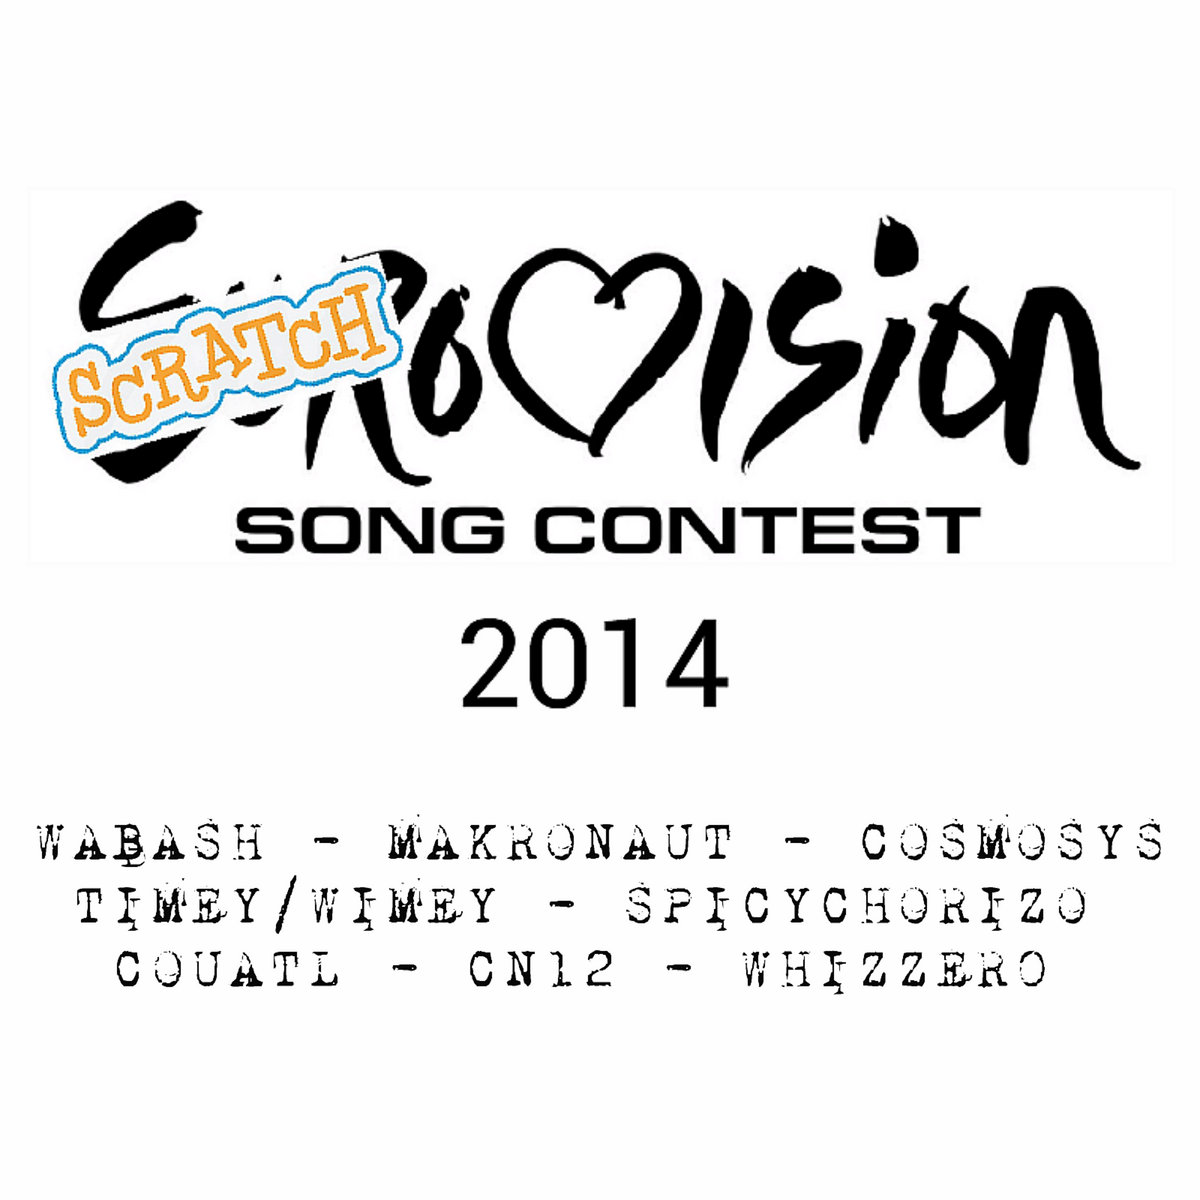 Scratchovision Song Contest 2014